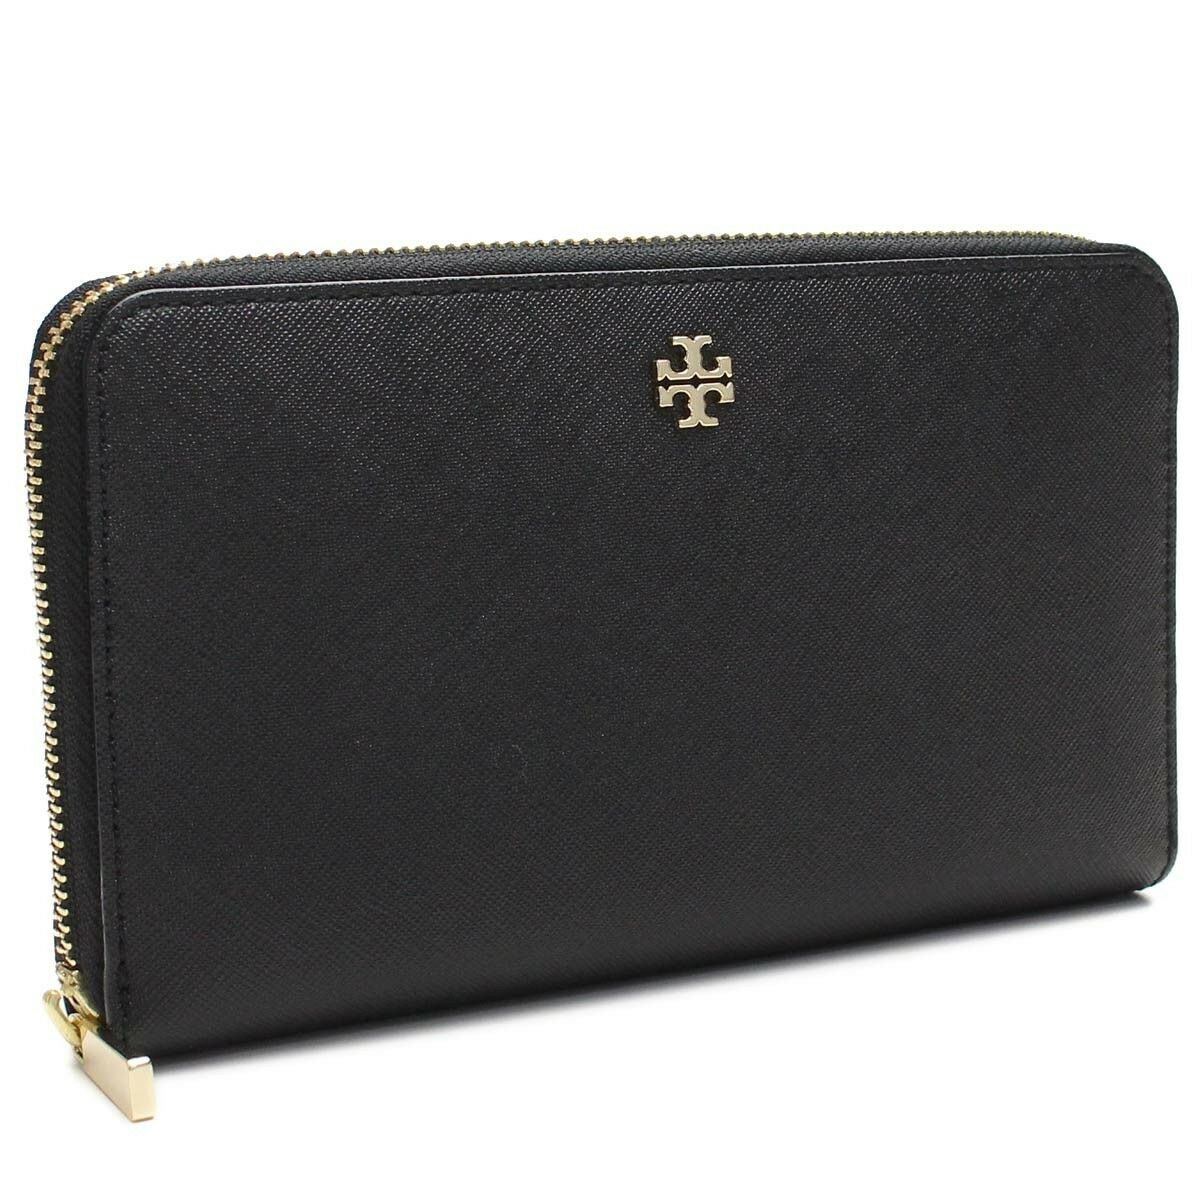 Tory Burch ROBINSON Black Saffiano Zip Around Continental Wallet 33650 NEW